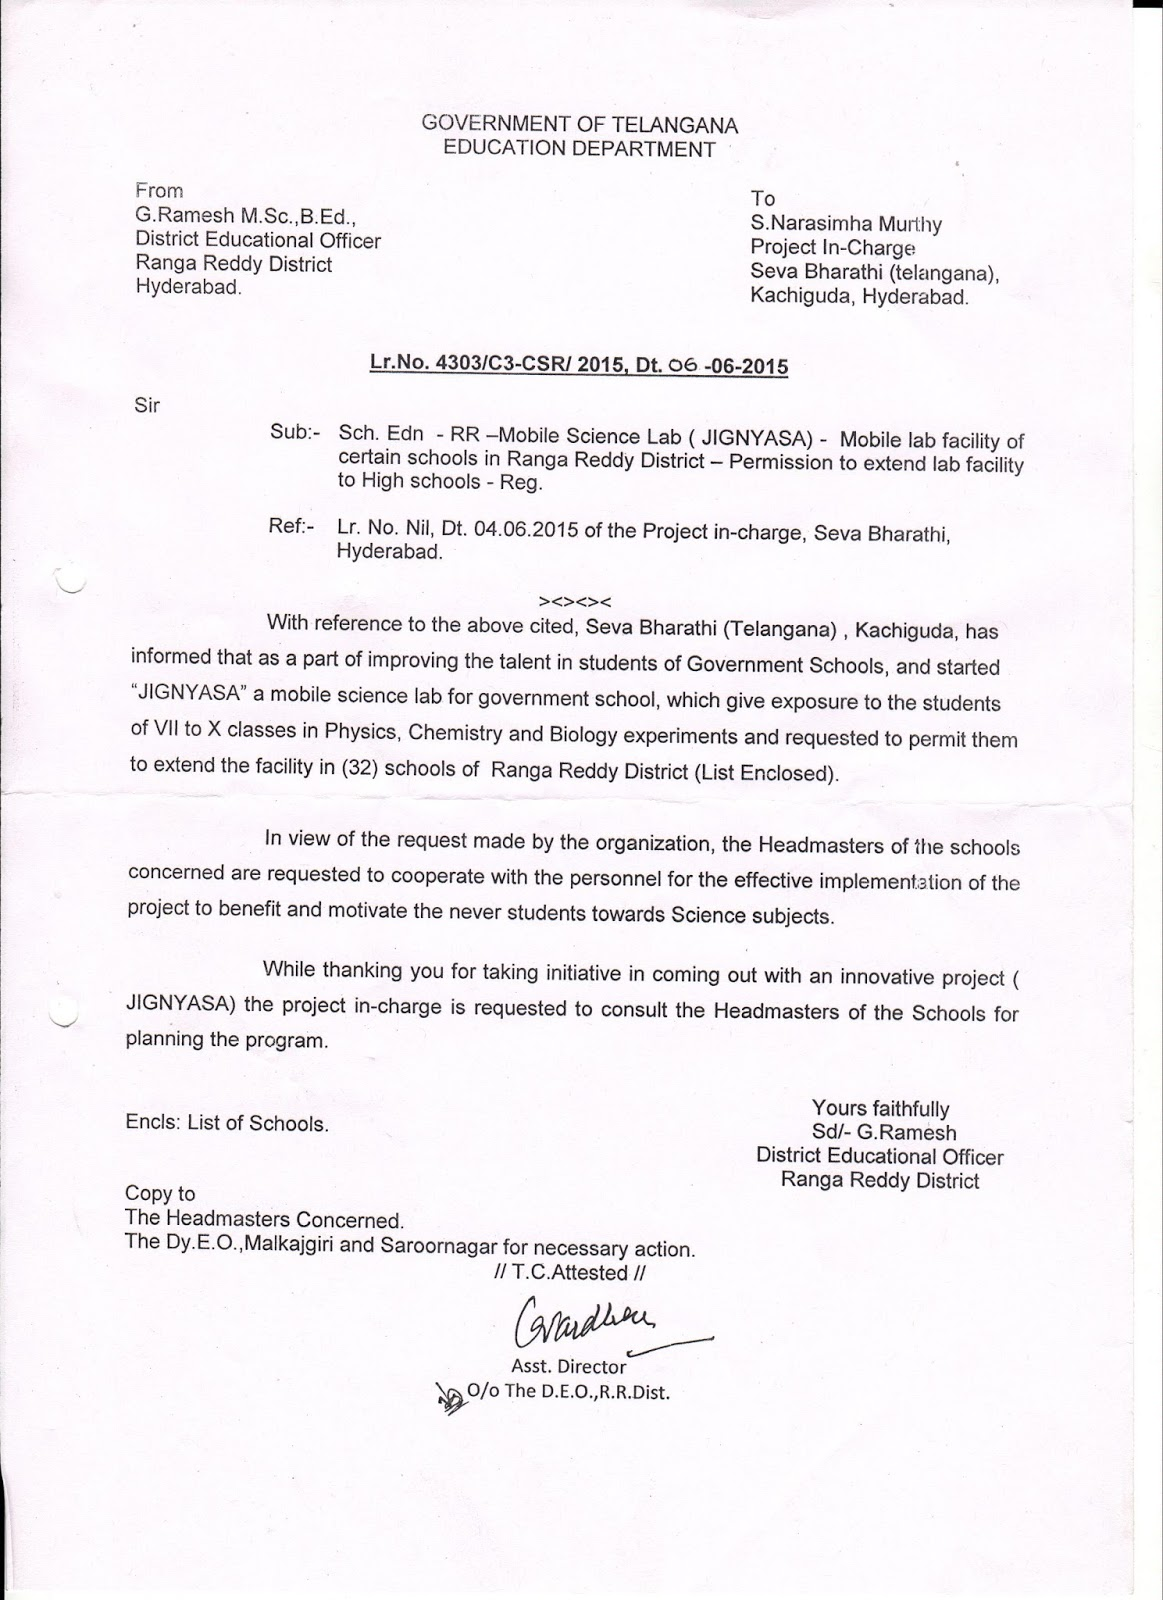 jignyasa rangareddy deo permission letter to sevabharathi seva bharathi giving science exposure to 14 000 secondary class students 6th 10th class by ing 43 schools in both rangareddy and hyderabad